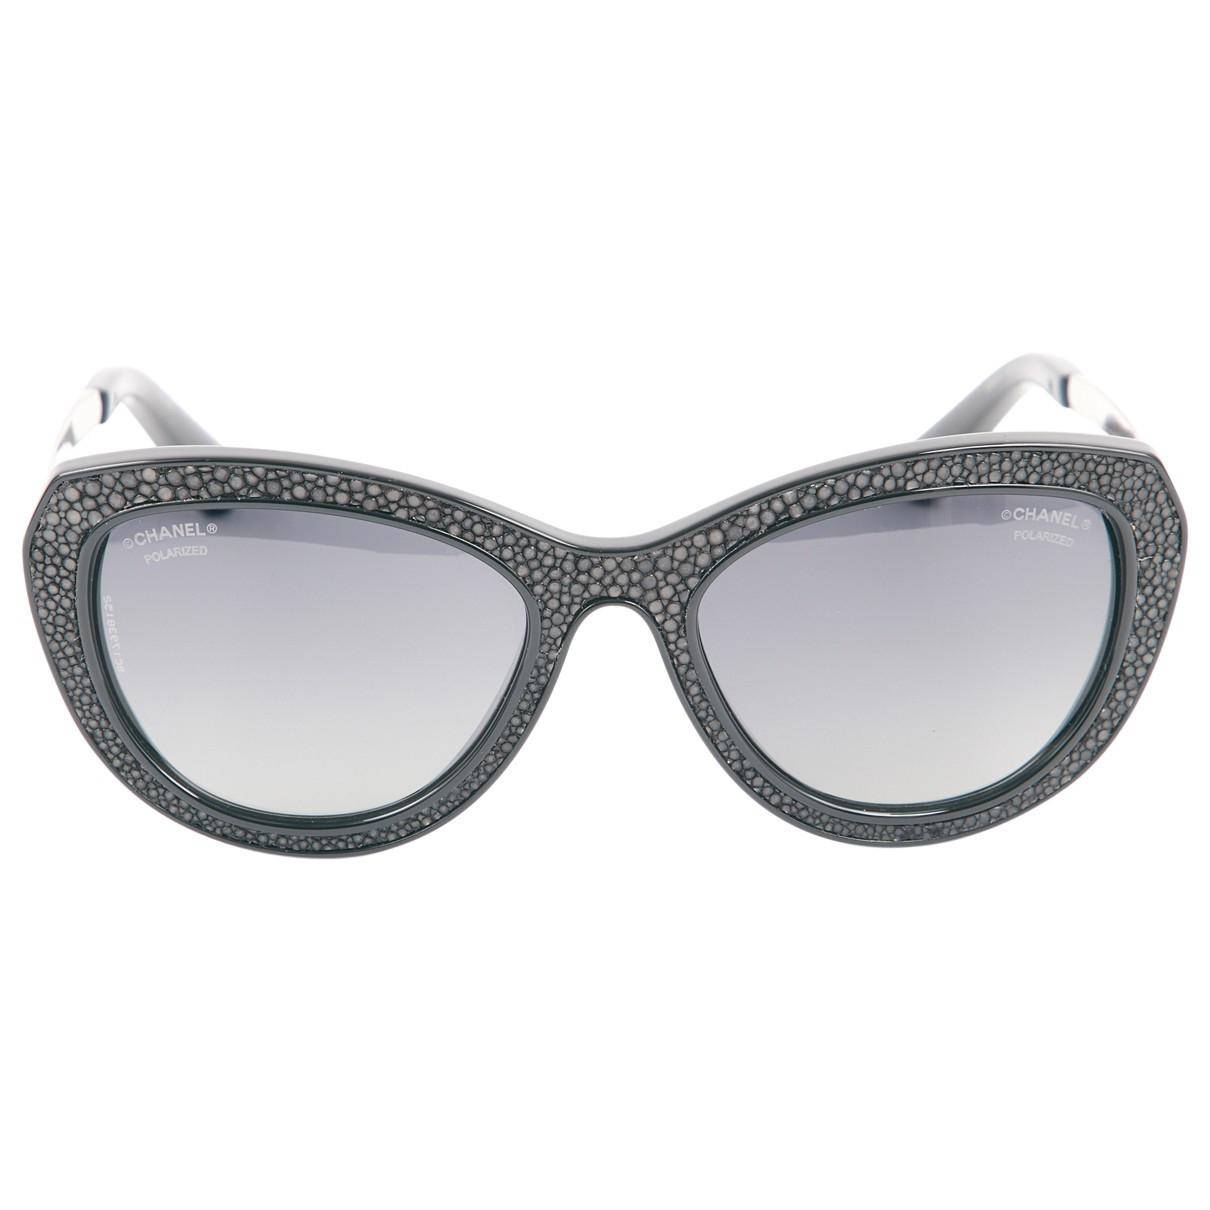 82665a39a6c Lyst - Chanel Pre-owned Sunglasses in Black